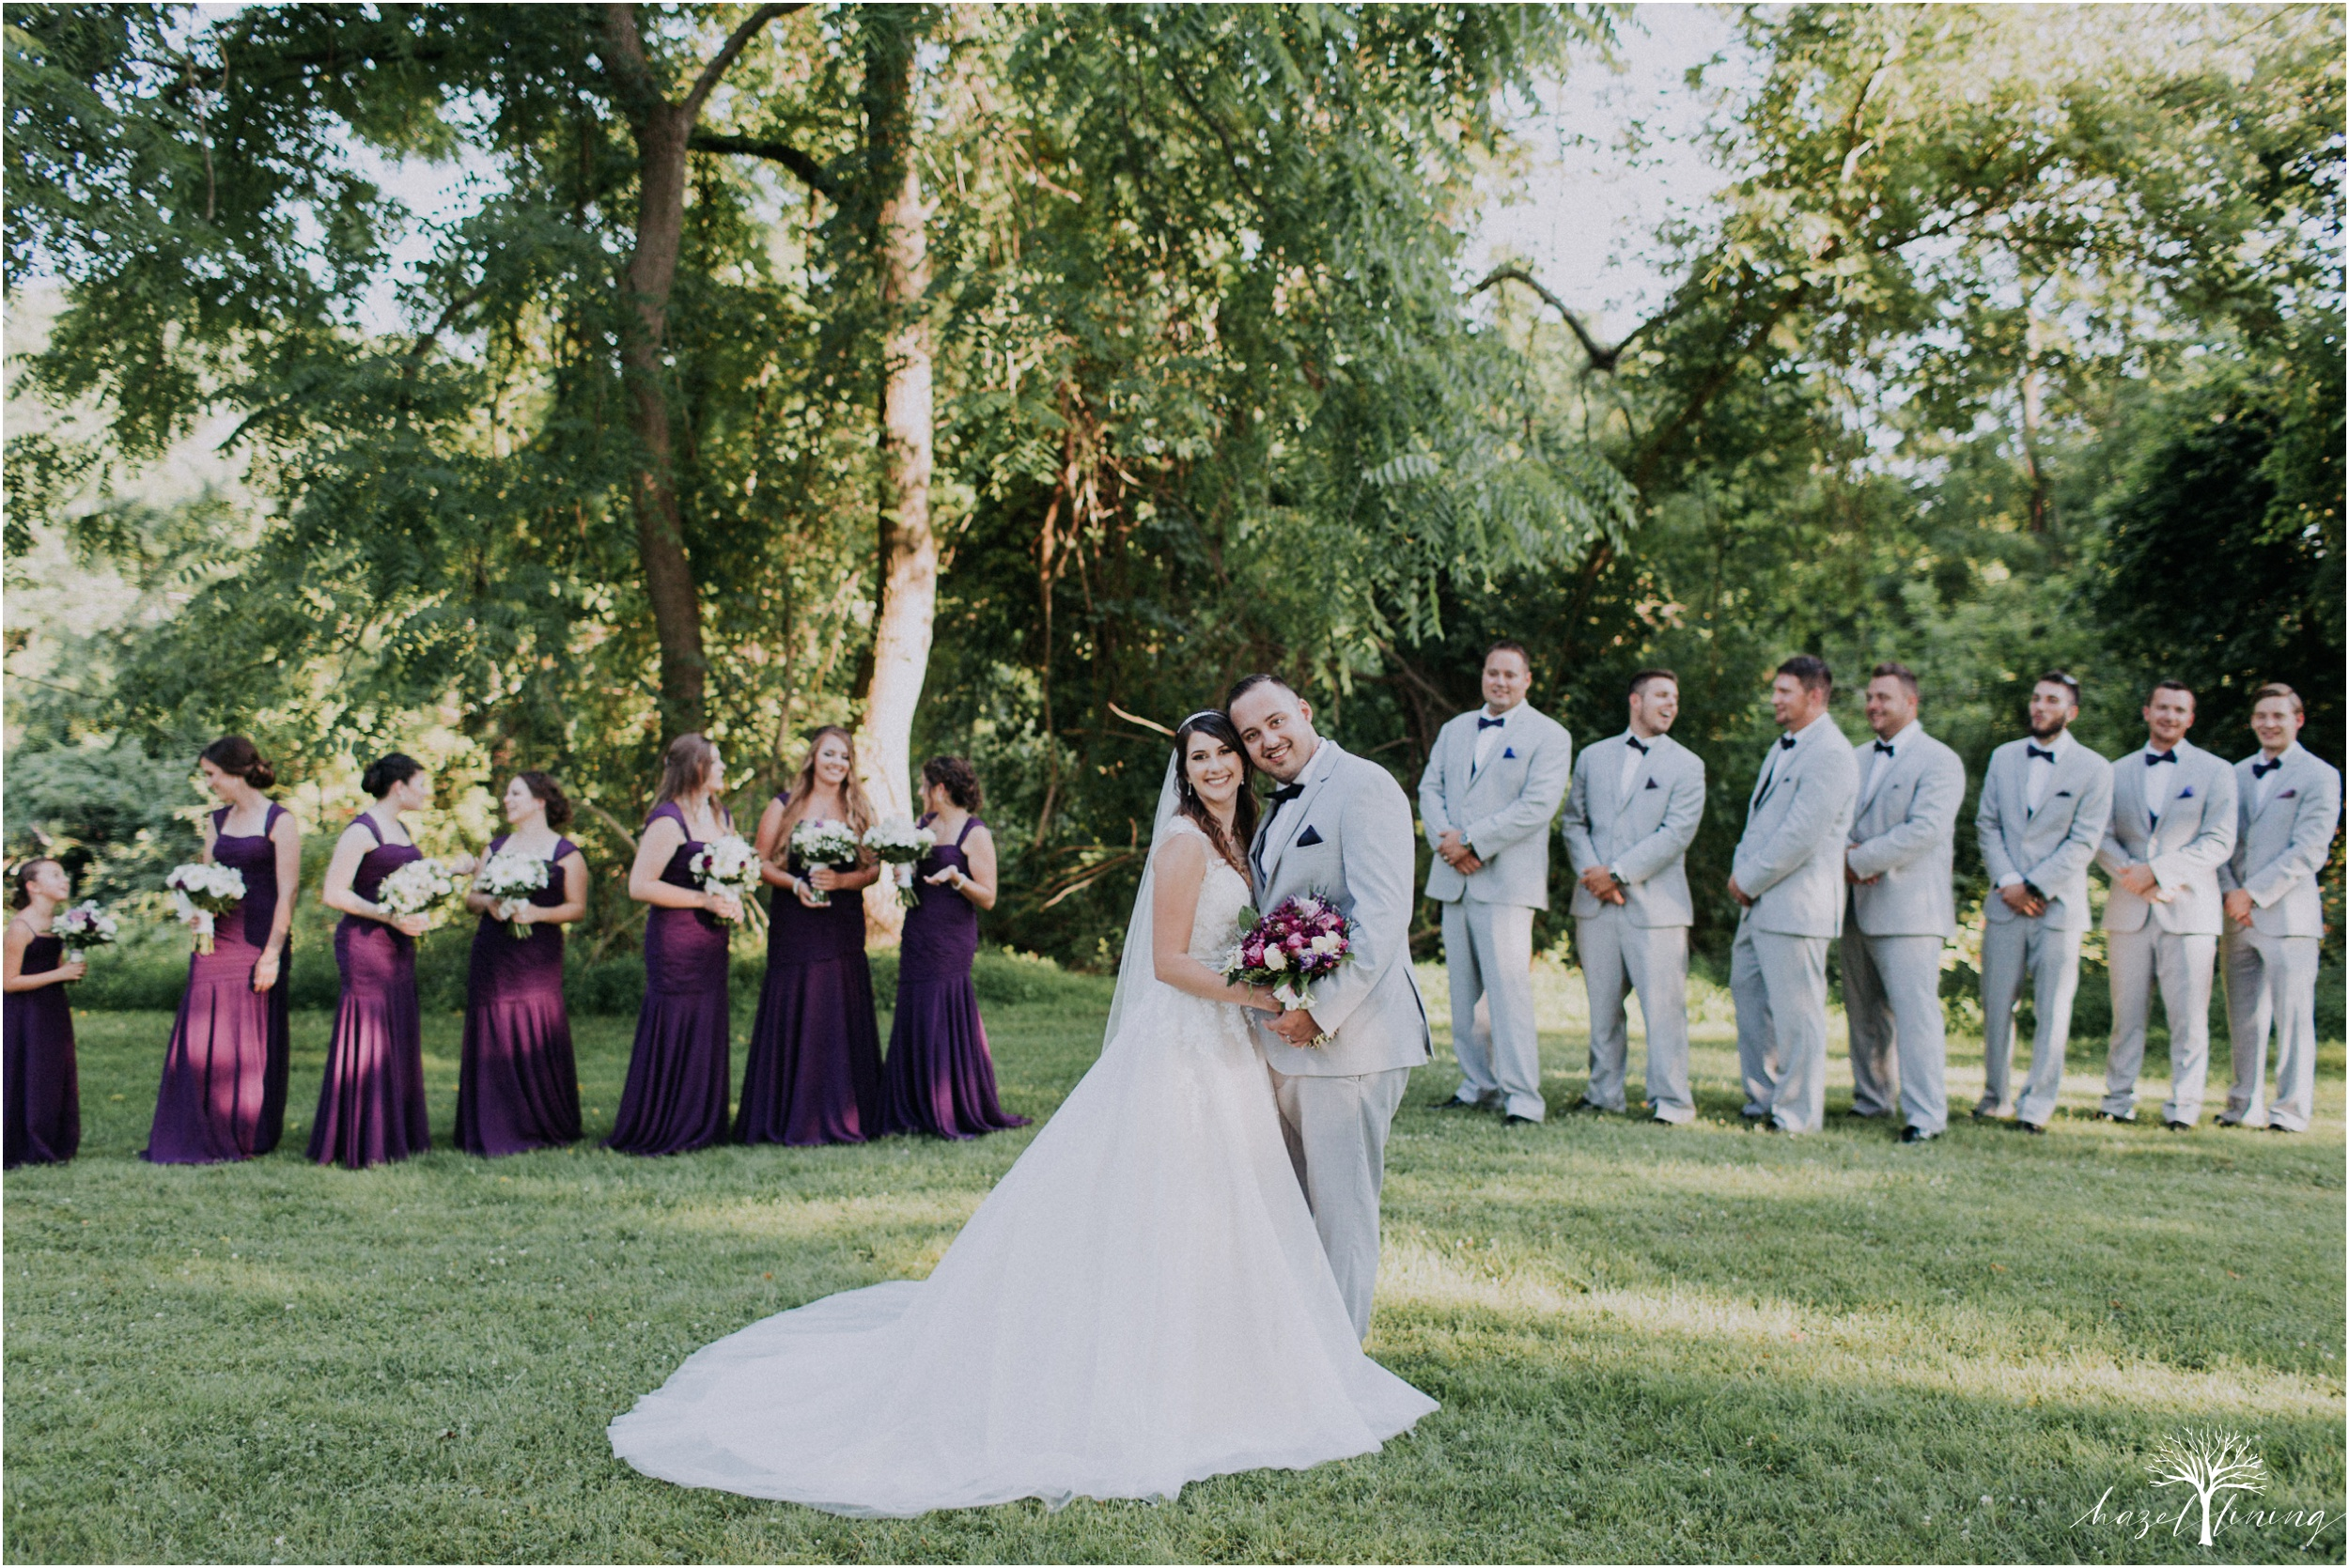 cassie-depinto-tyler-bodder-playwicki-farm-buck-hotel-featserville-trevose-pennsylvania-summer-outdoor-wedding-hazel-lining-travel-wedding-elopement-photography_0230.jpg